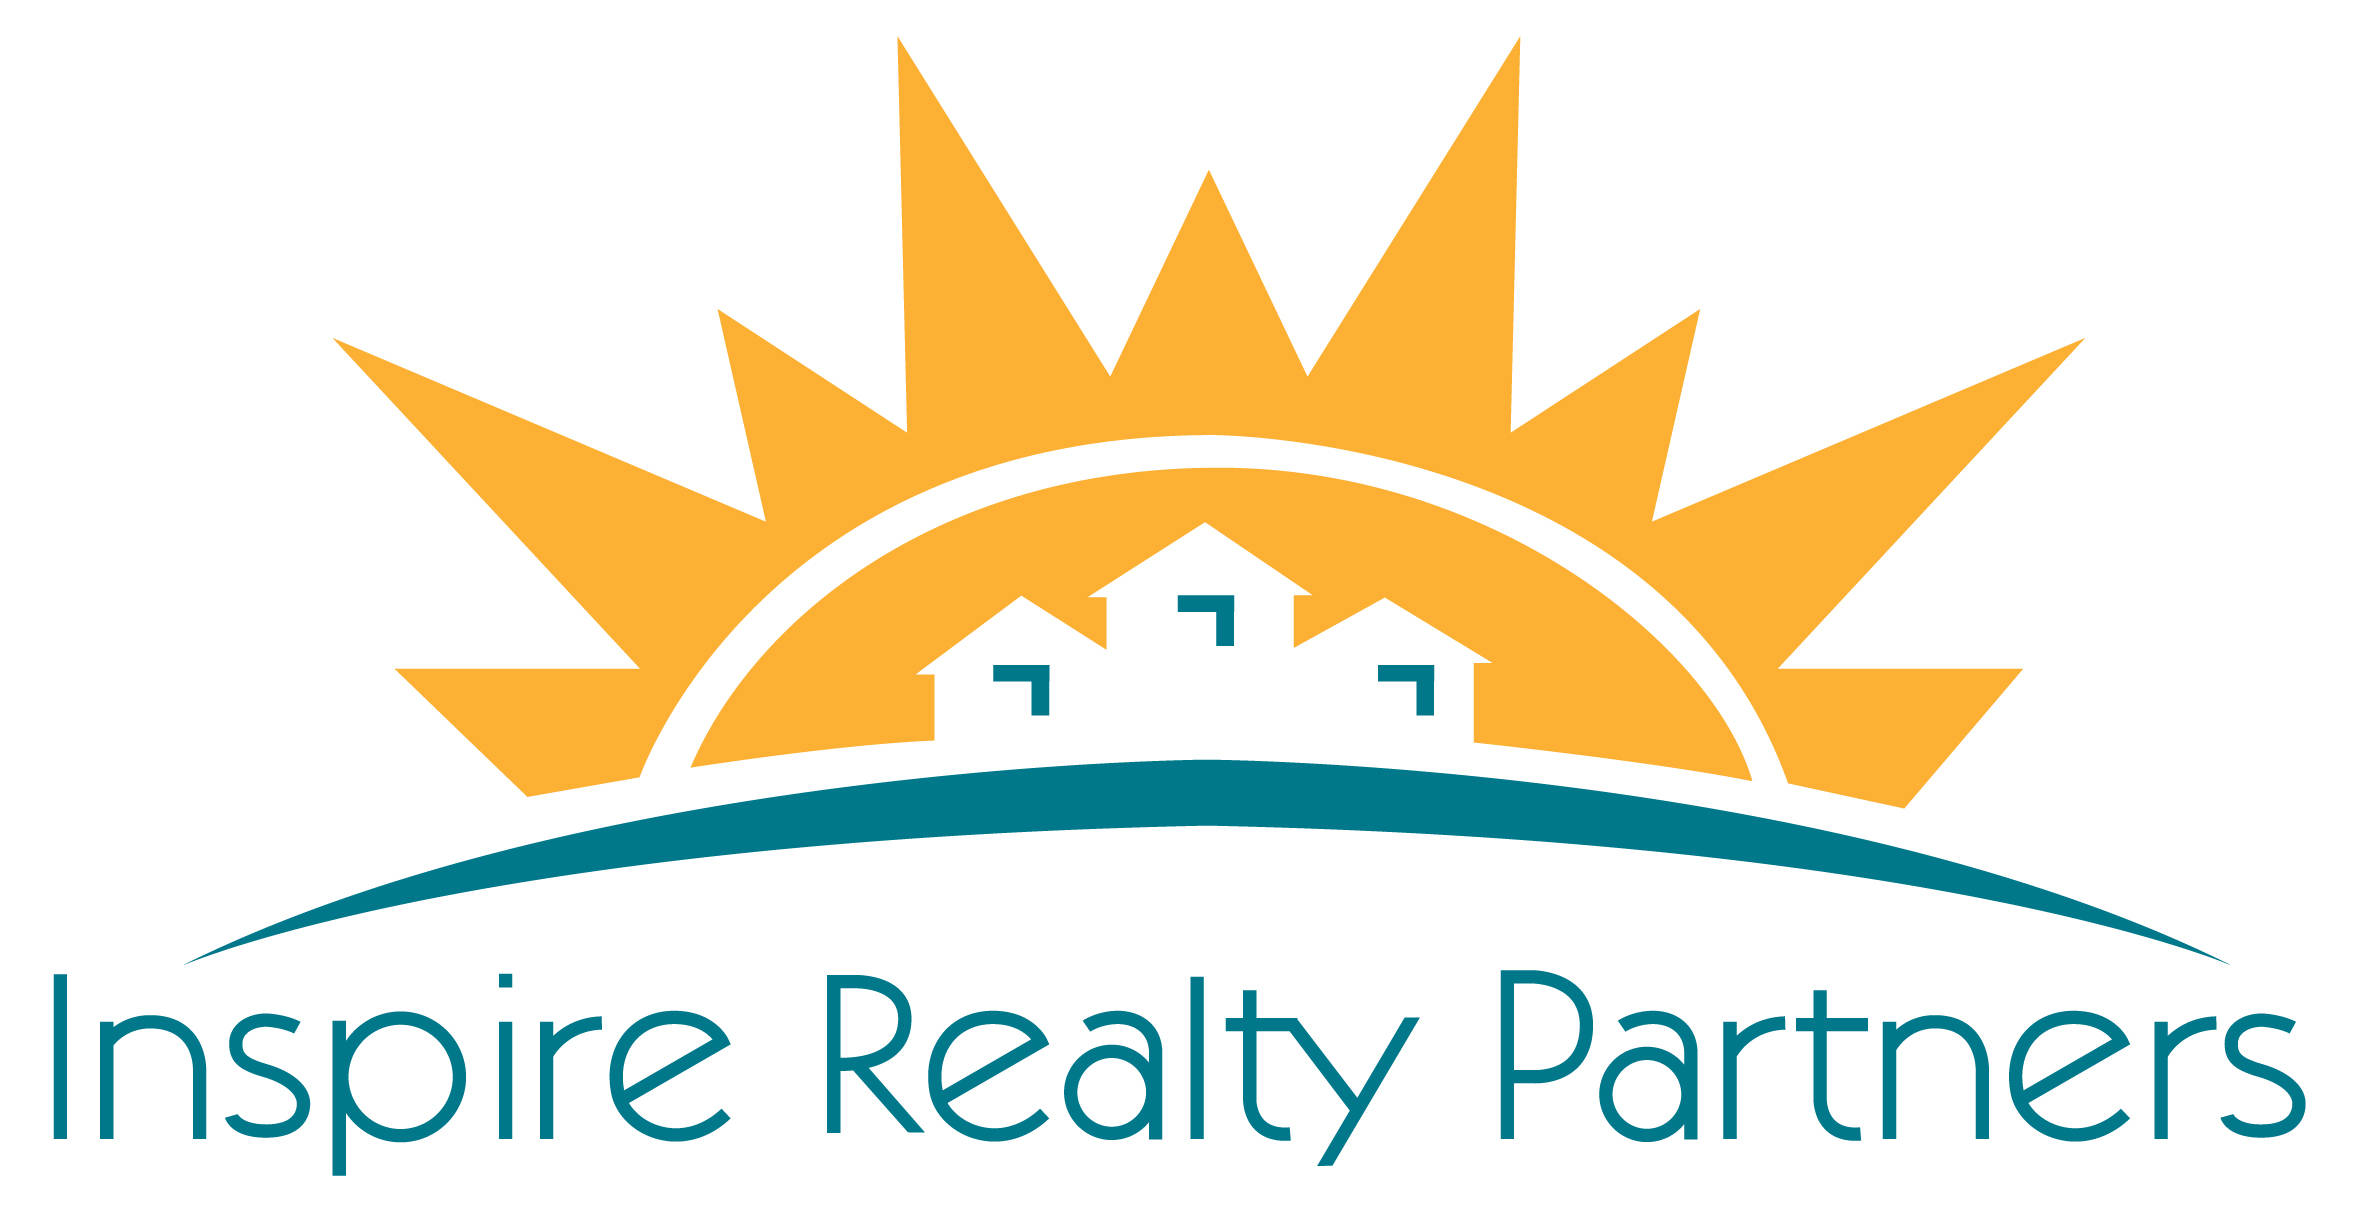 Inspire Realty Partners